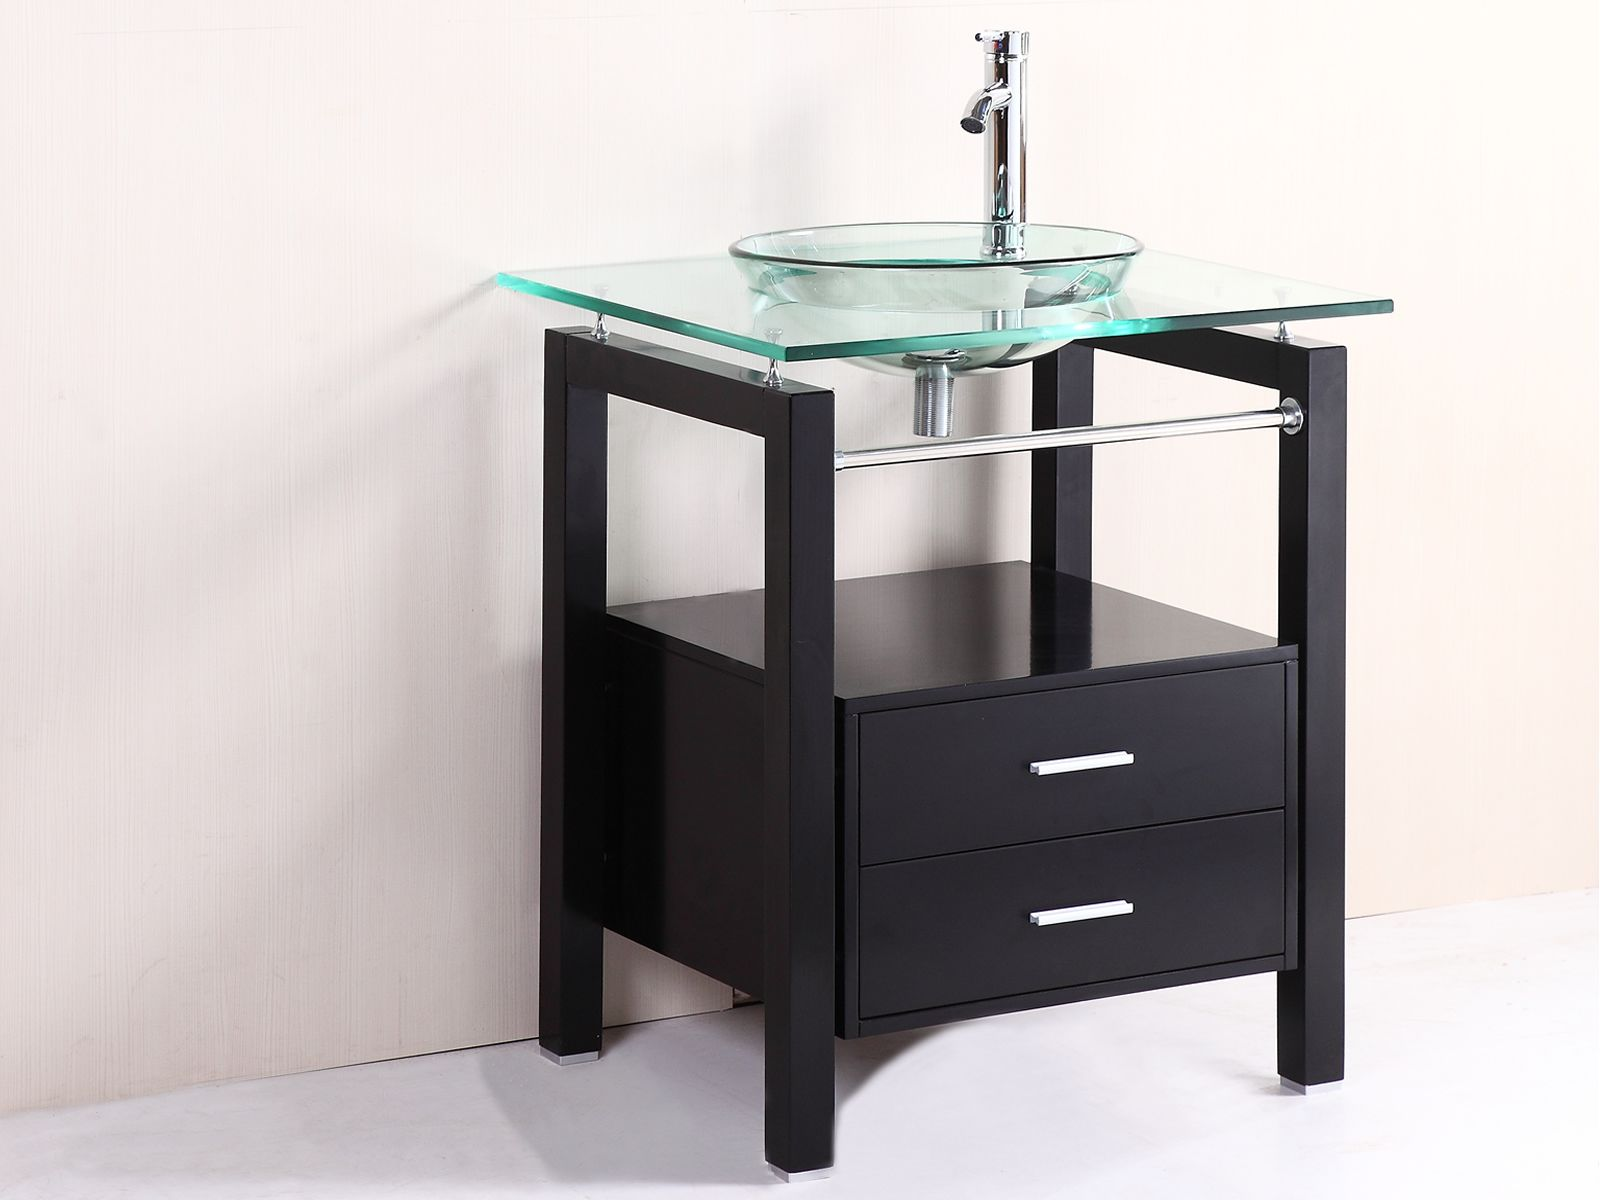 Modern 28 bathroom tempered clear glass vessel sink vanity cabinet w faucet